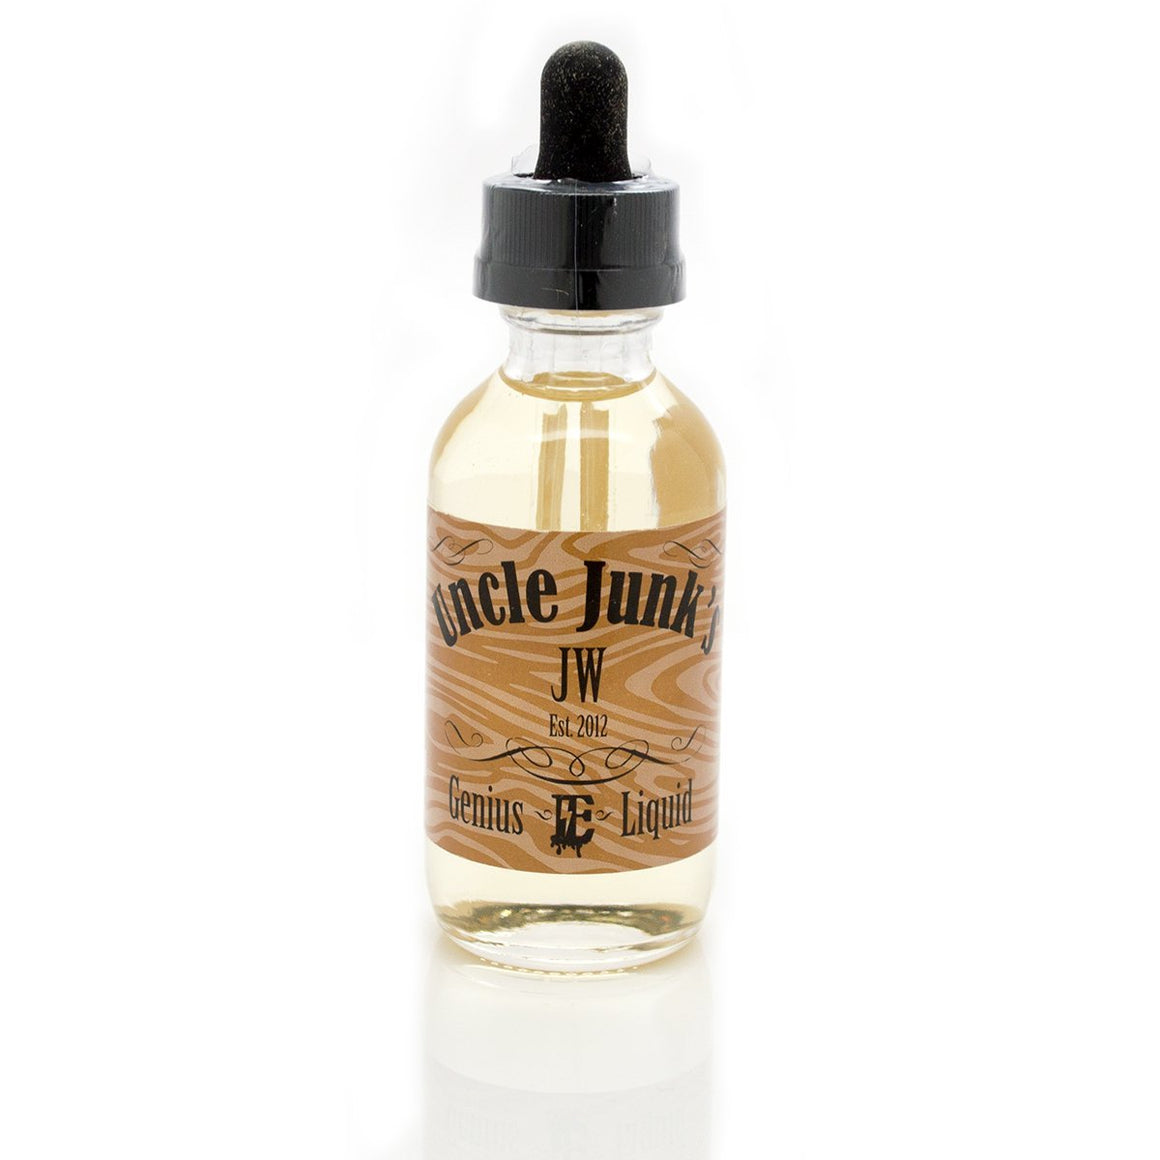 Uncle Junk's Genius Juice Juice Jon Wayne (JW) | Honey & Caramel Tobacco - Best Selling Tobacco Vape